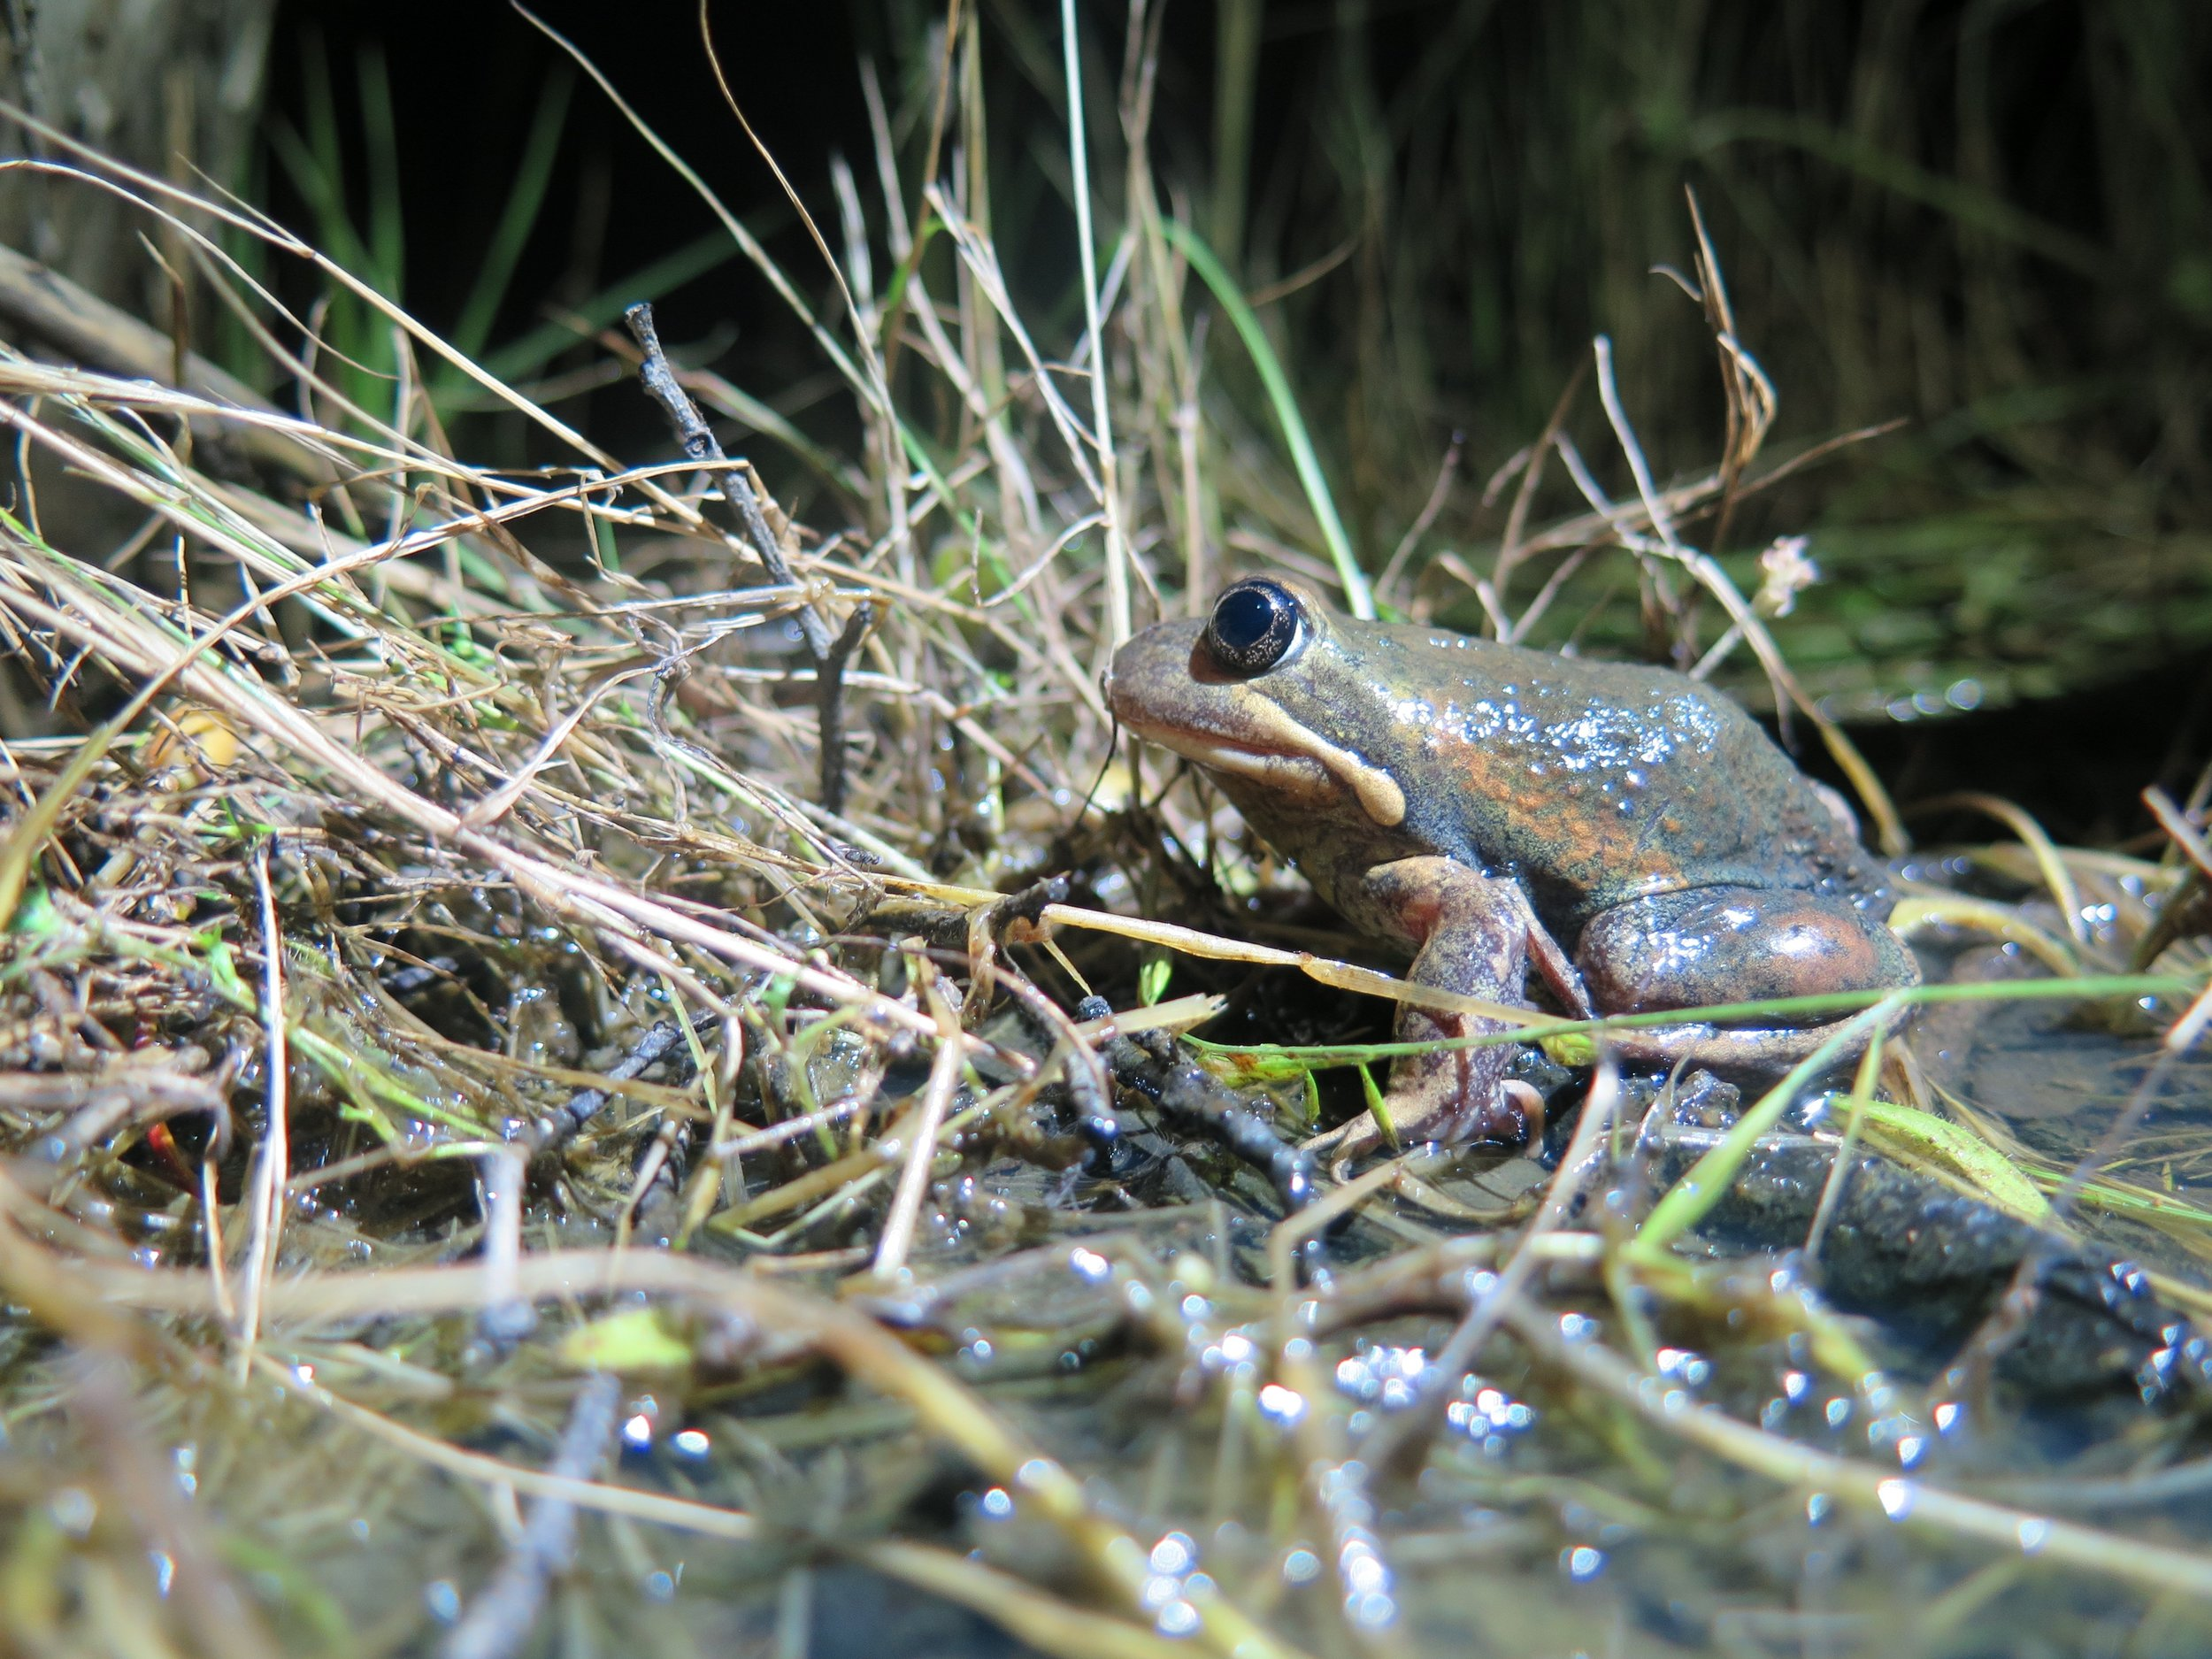 The Eastern Banjo Frog can migrate up to one kilometre to their breeding sites.  Image: Cathy Cavallo